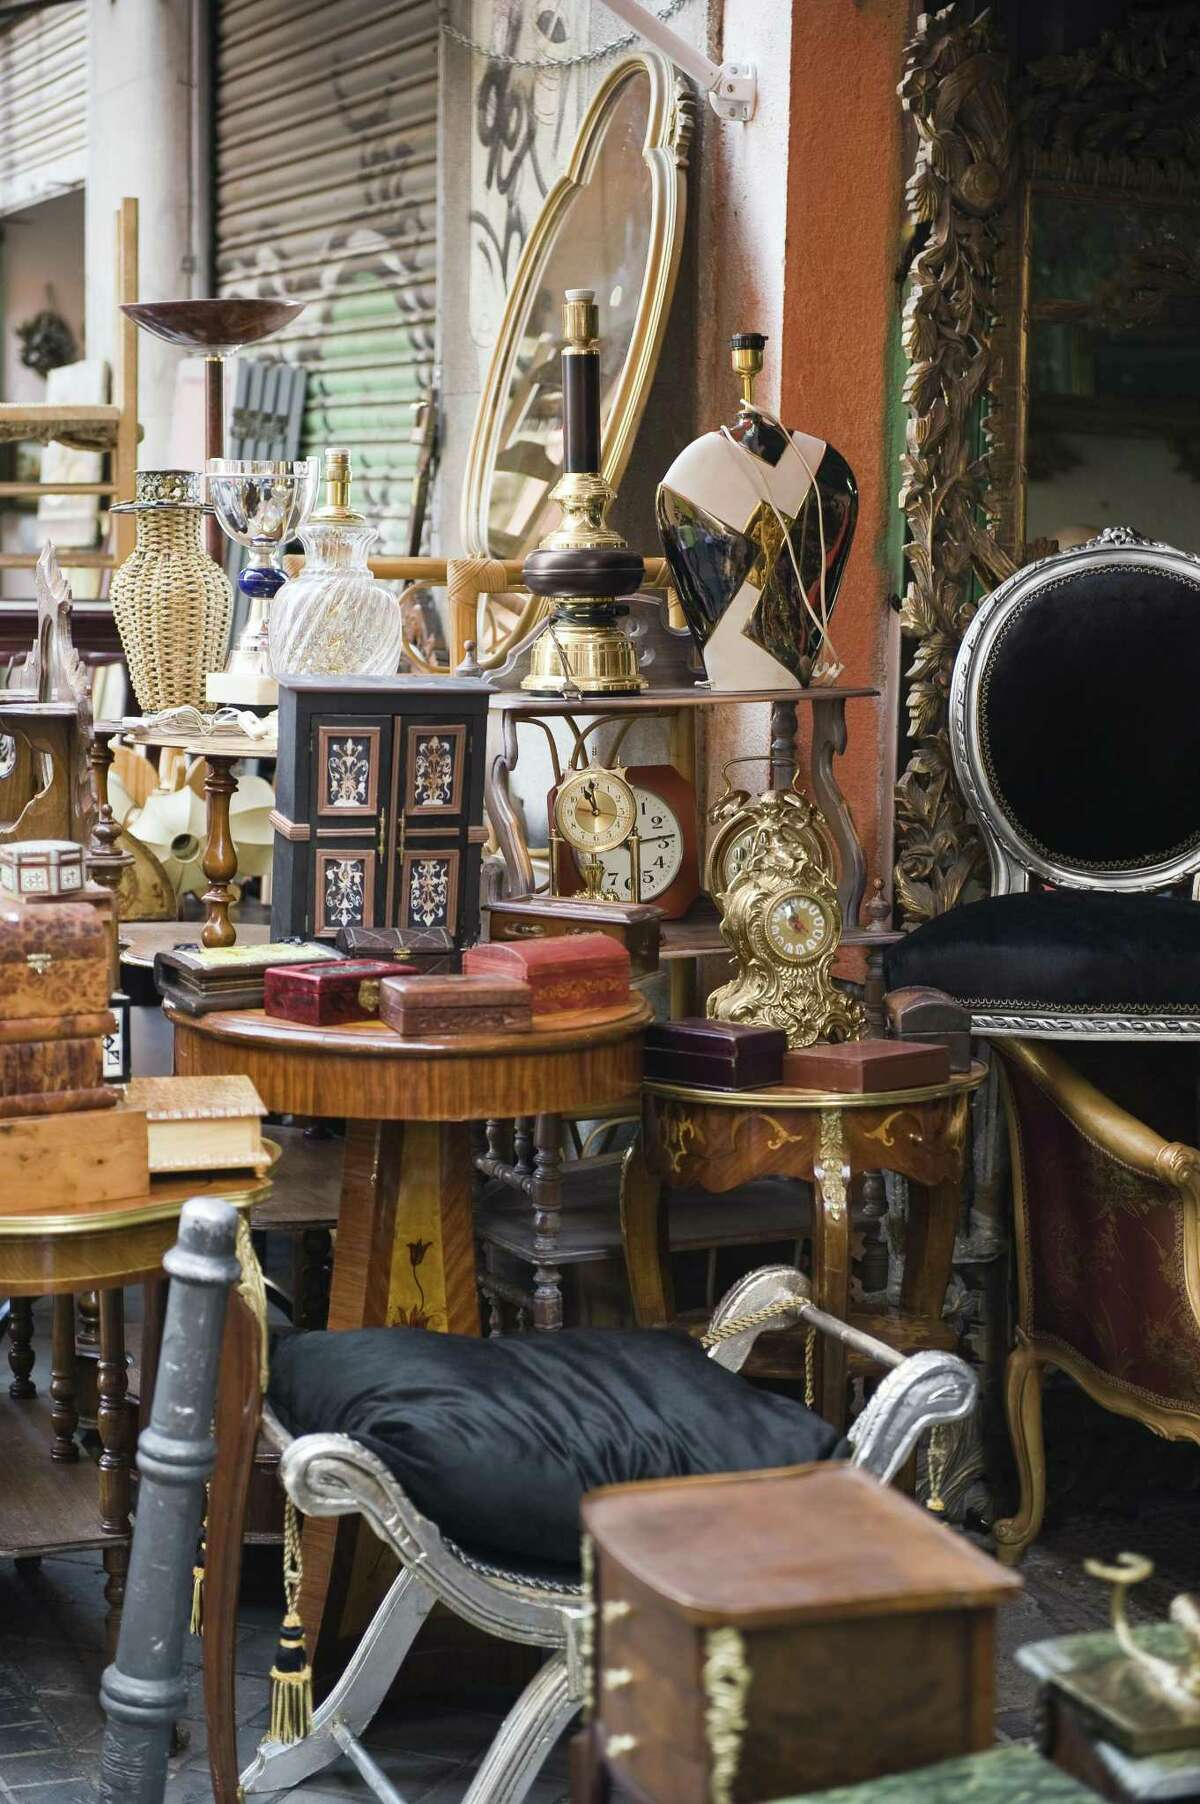 Is there anything of worth here? Appraiser James Lipton, who runs the Easton-based Appraisers Associates Inc., is often called to homes to assess the treasures tucked away in attics, basements or sometimes in plain sight.